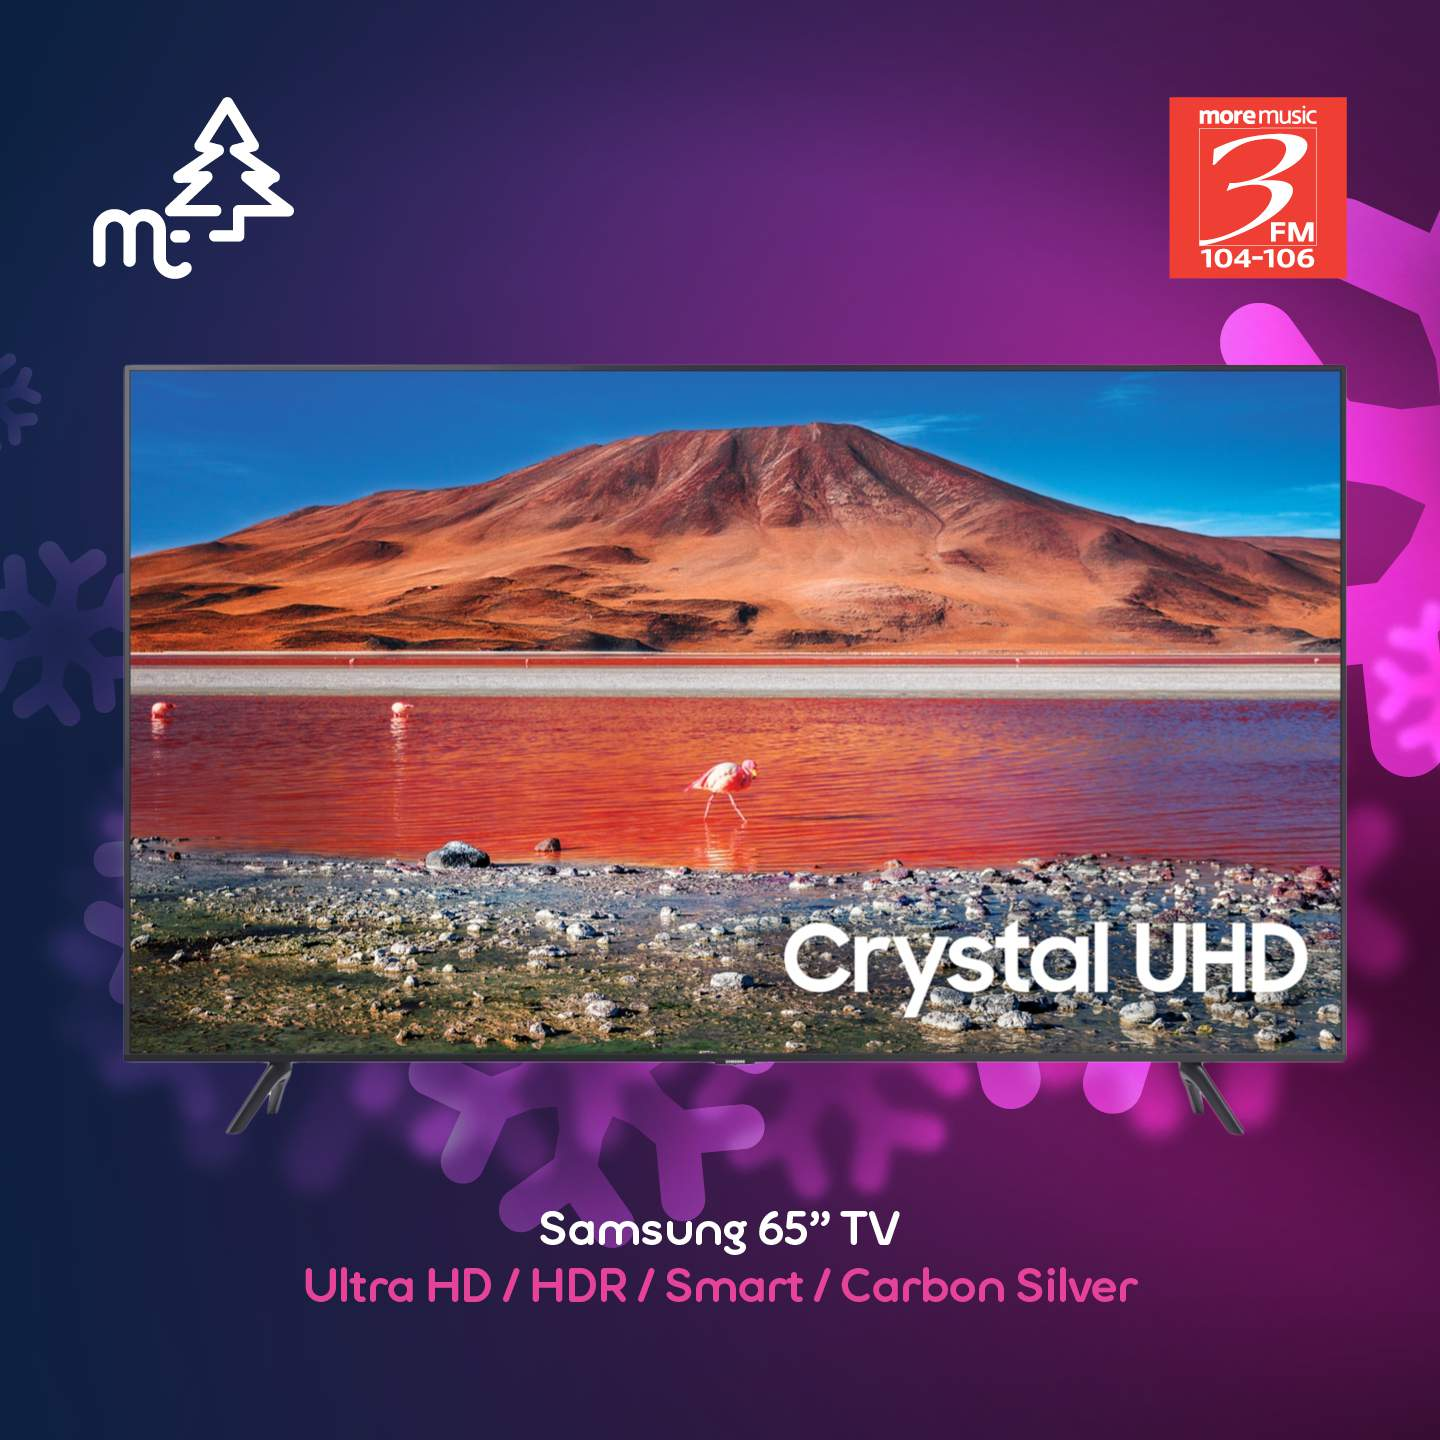 """Samsung 65"""" Ultra HD, HDR, Smart - Carbon Silver"""